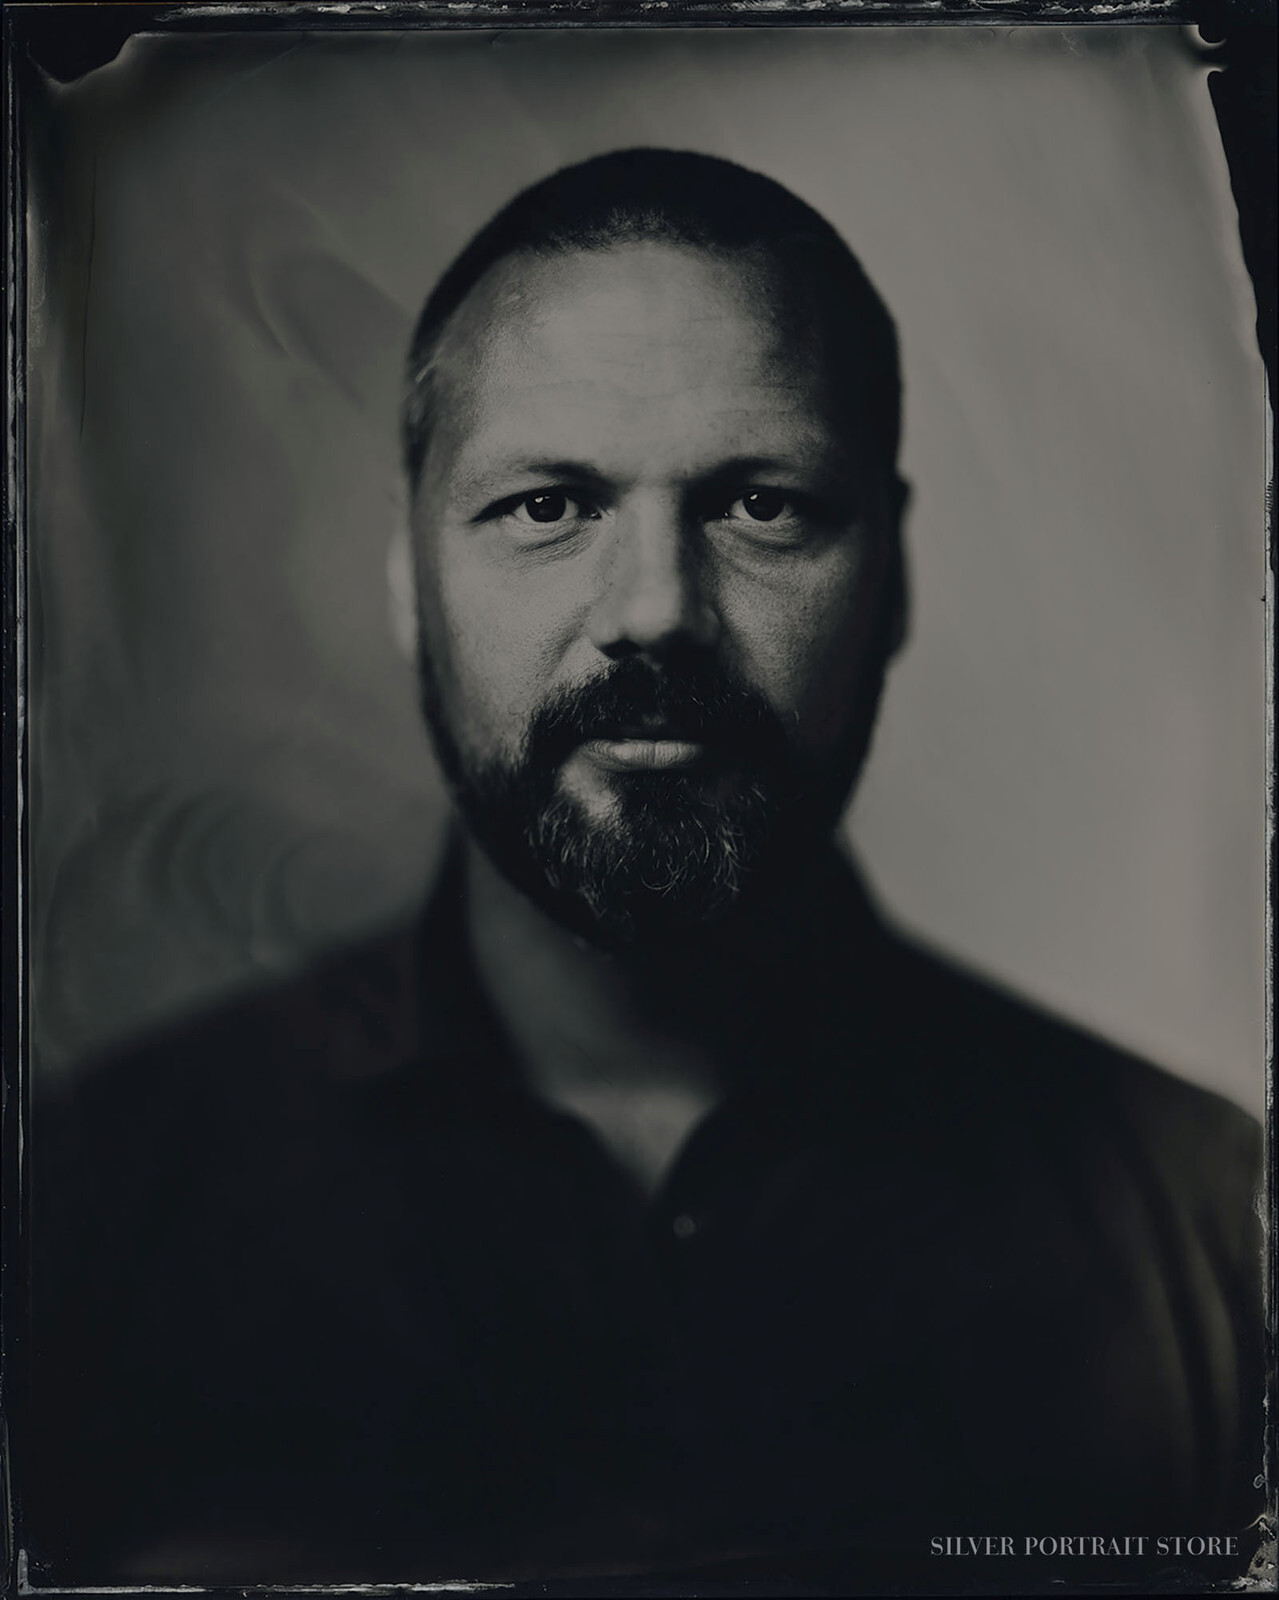 Willem-Silver Portrait Store-scan from Wet plate collodion-Tintype 20 x 25 cm.